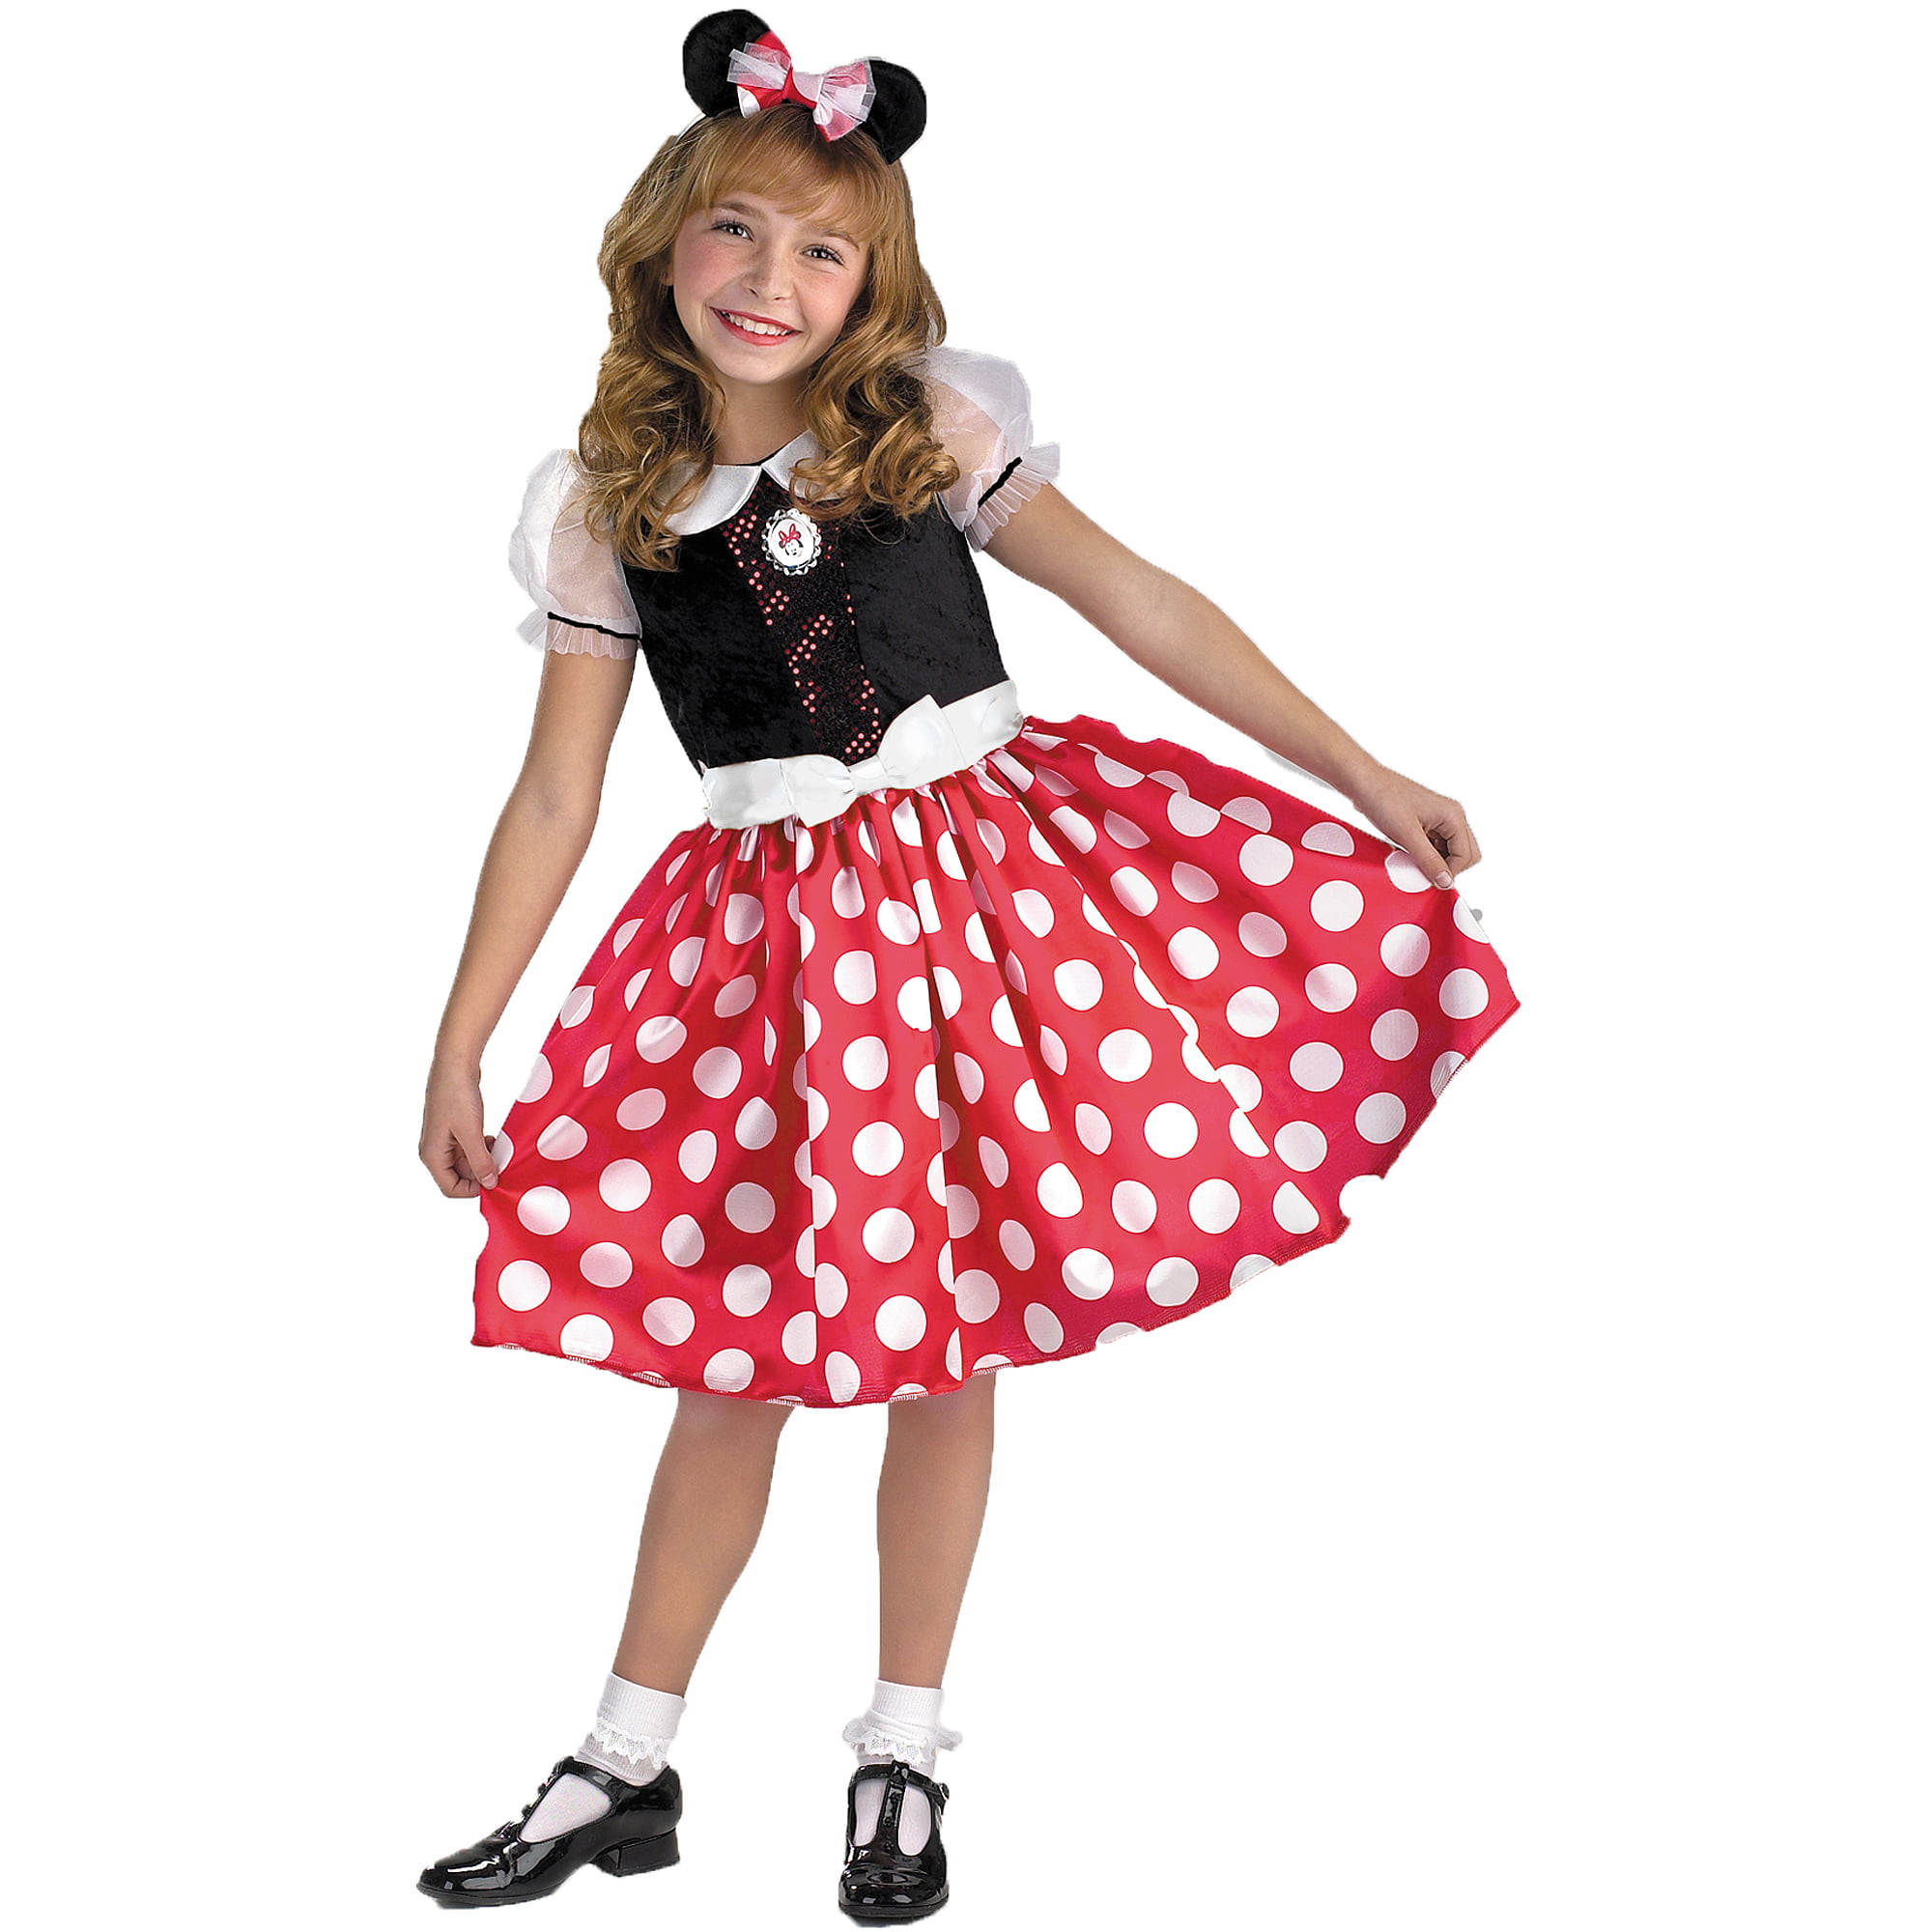 Minnie Mouse Child Halloween Costume  sc 1 st  Walmart & Minnie Mouse Halloween Costumes